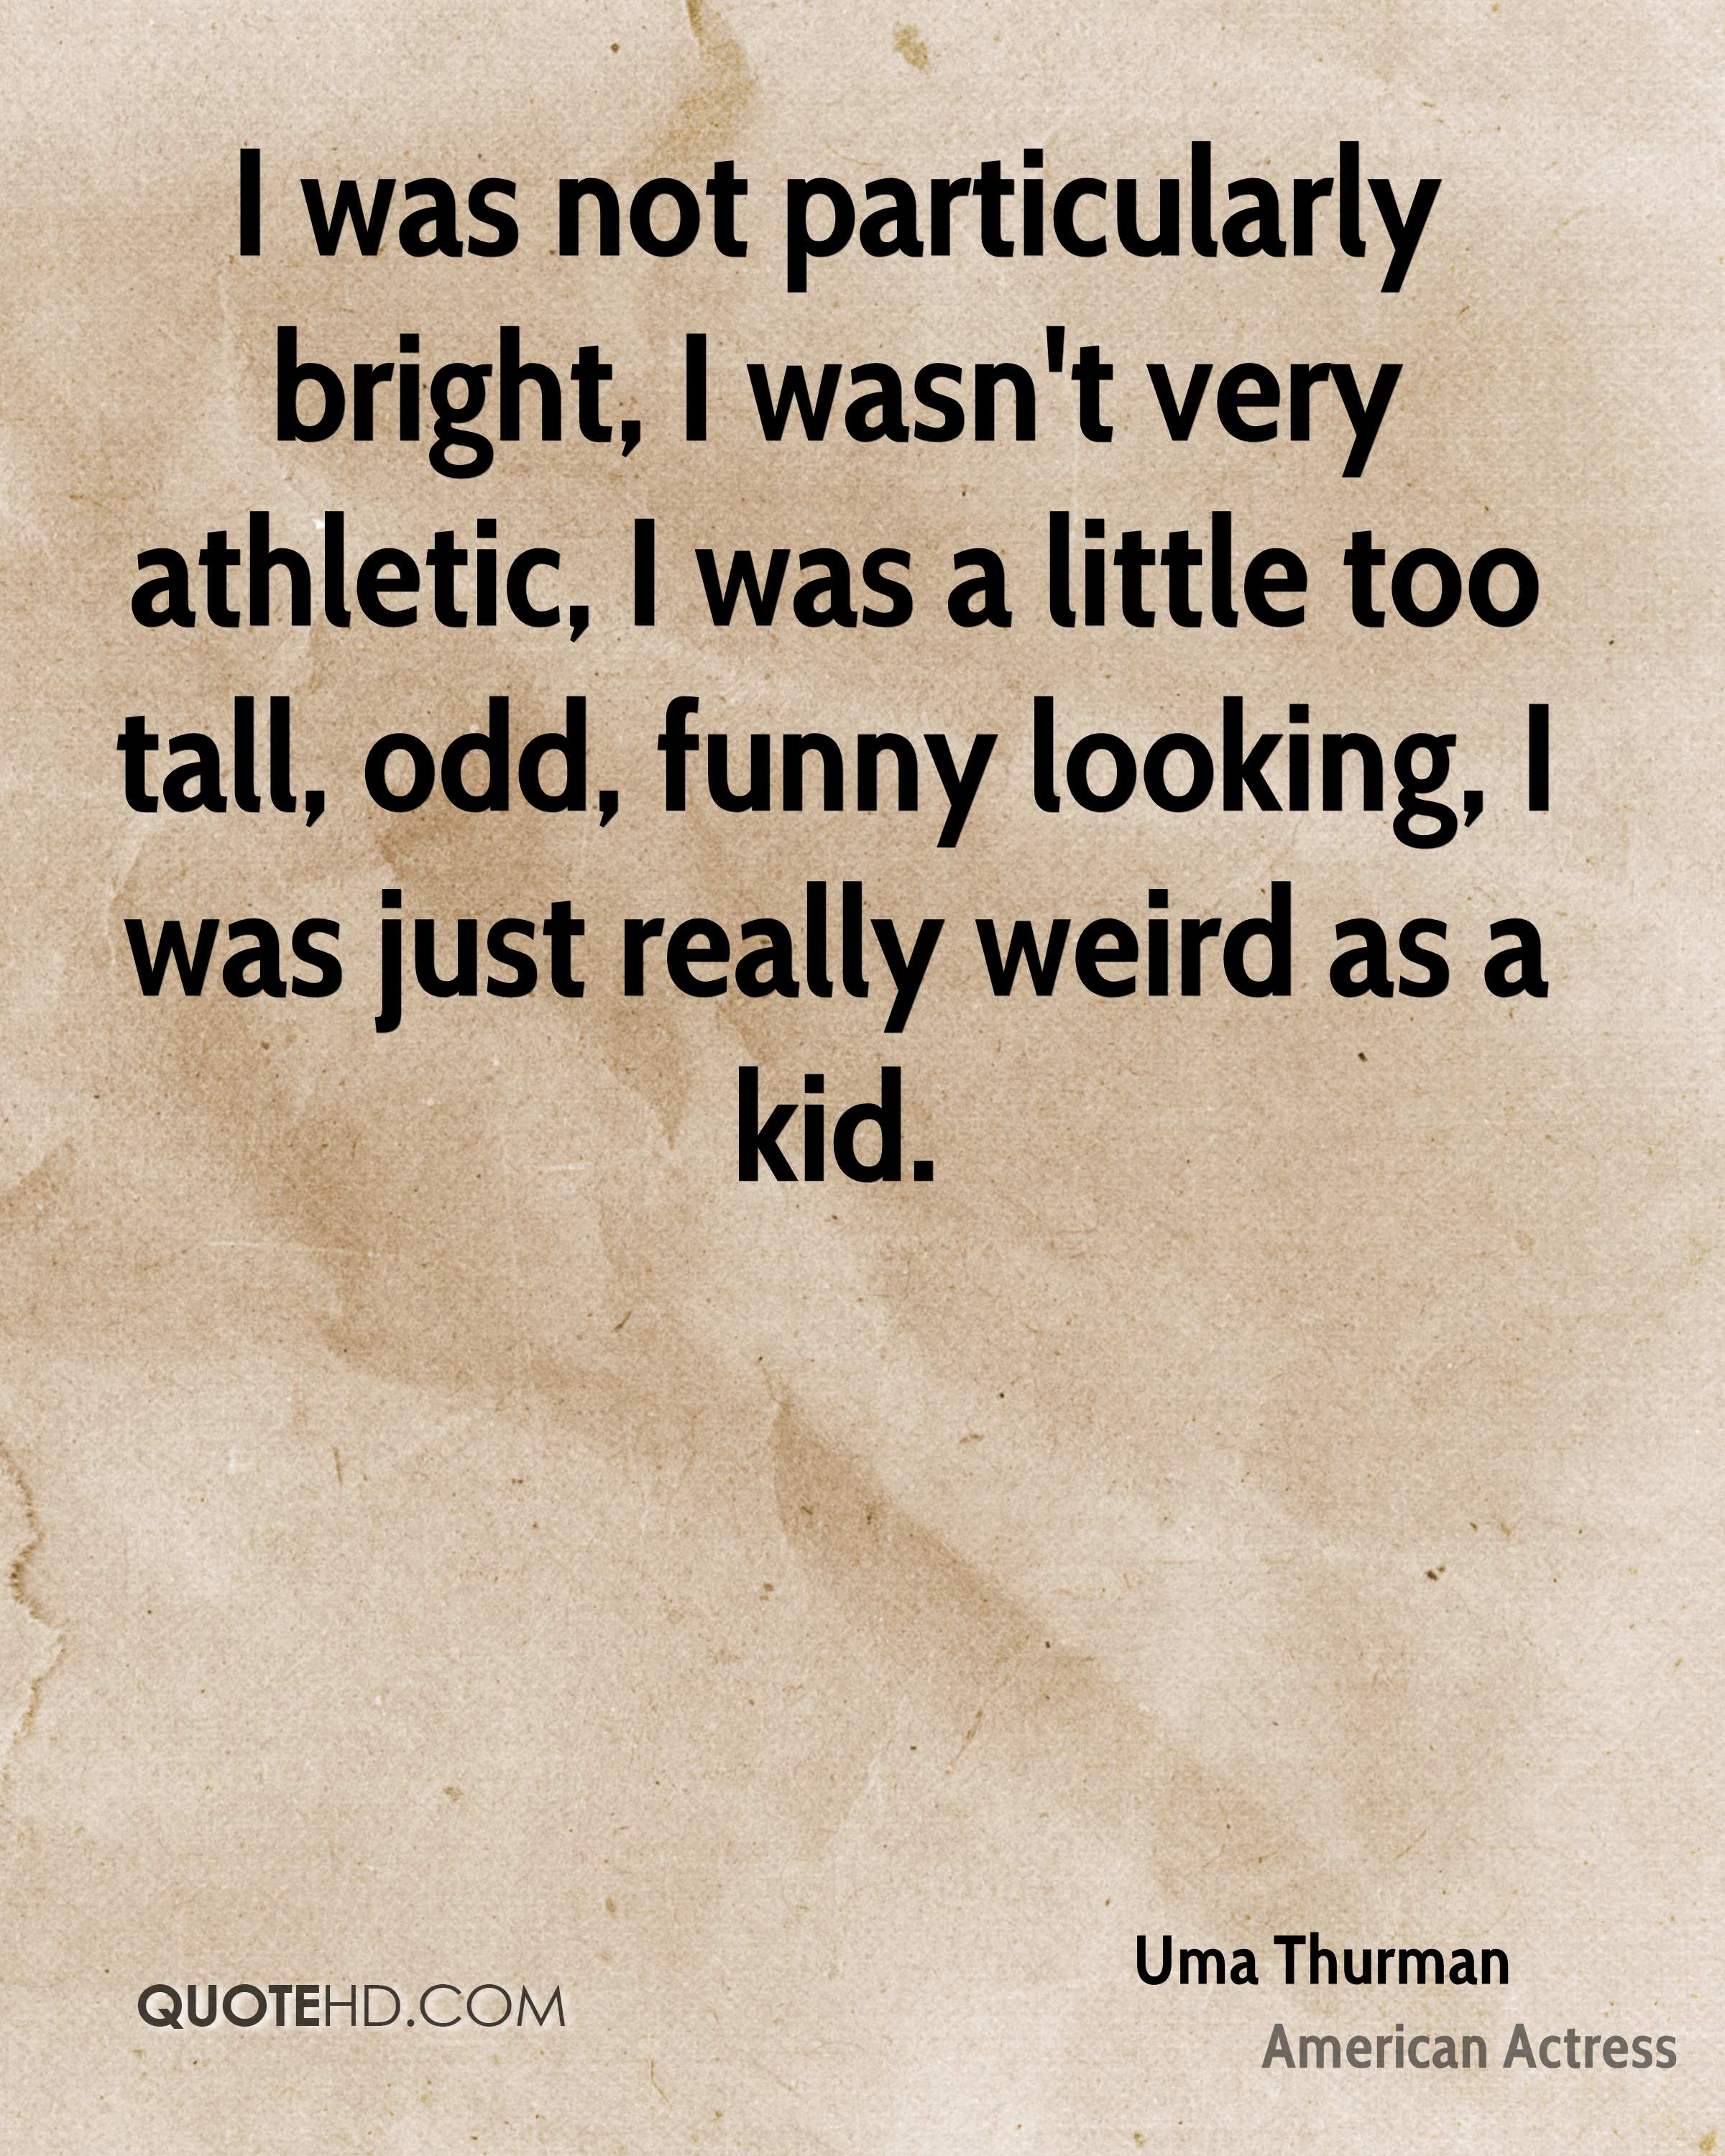 I was not particularly bright, I wasn't very athletic, I was a little too tall, odd, funny looking, I was just really weird as a kid.